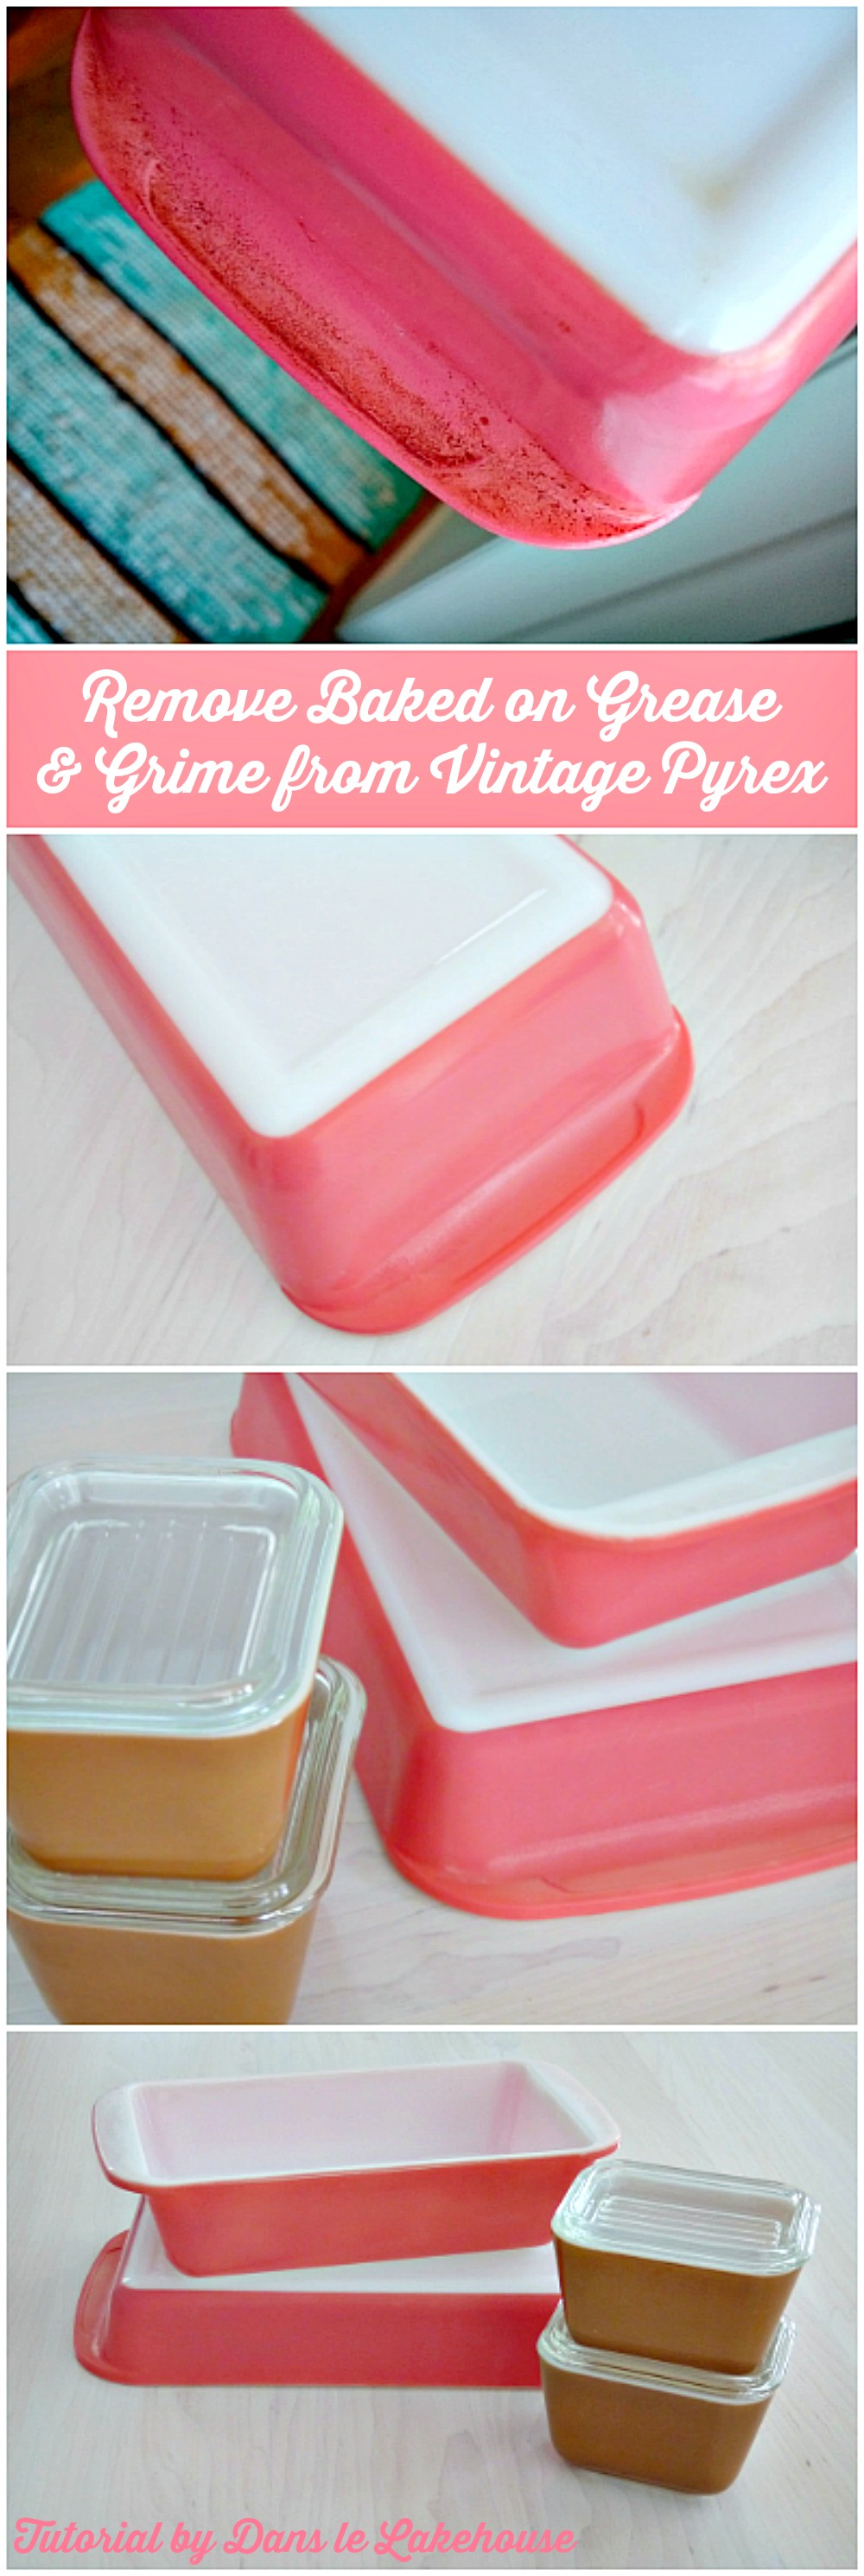 How to Clean Baked on Grease and Grime from Vintage Pyrex Bake Ware with Oven Cleaner